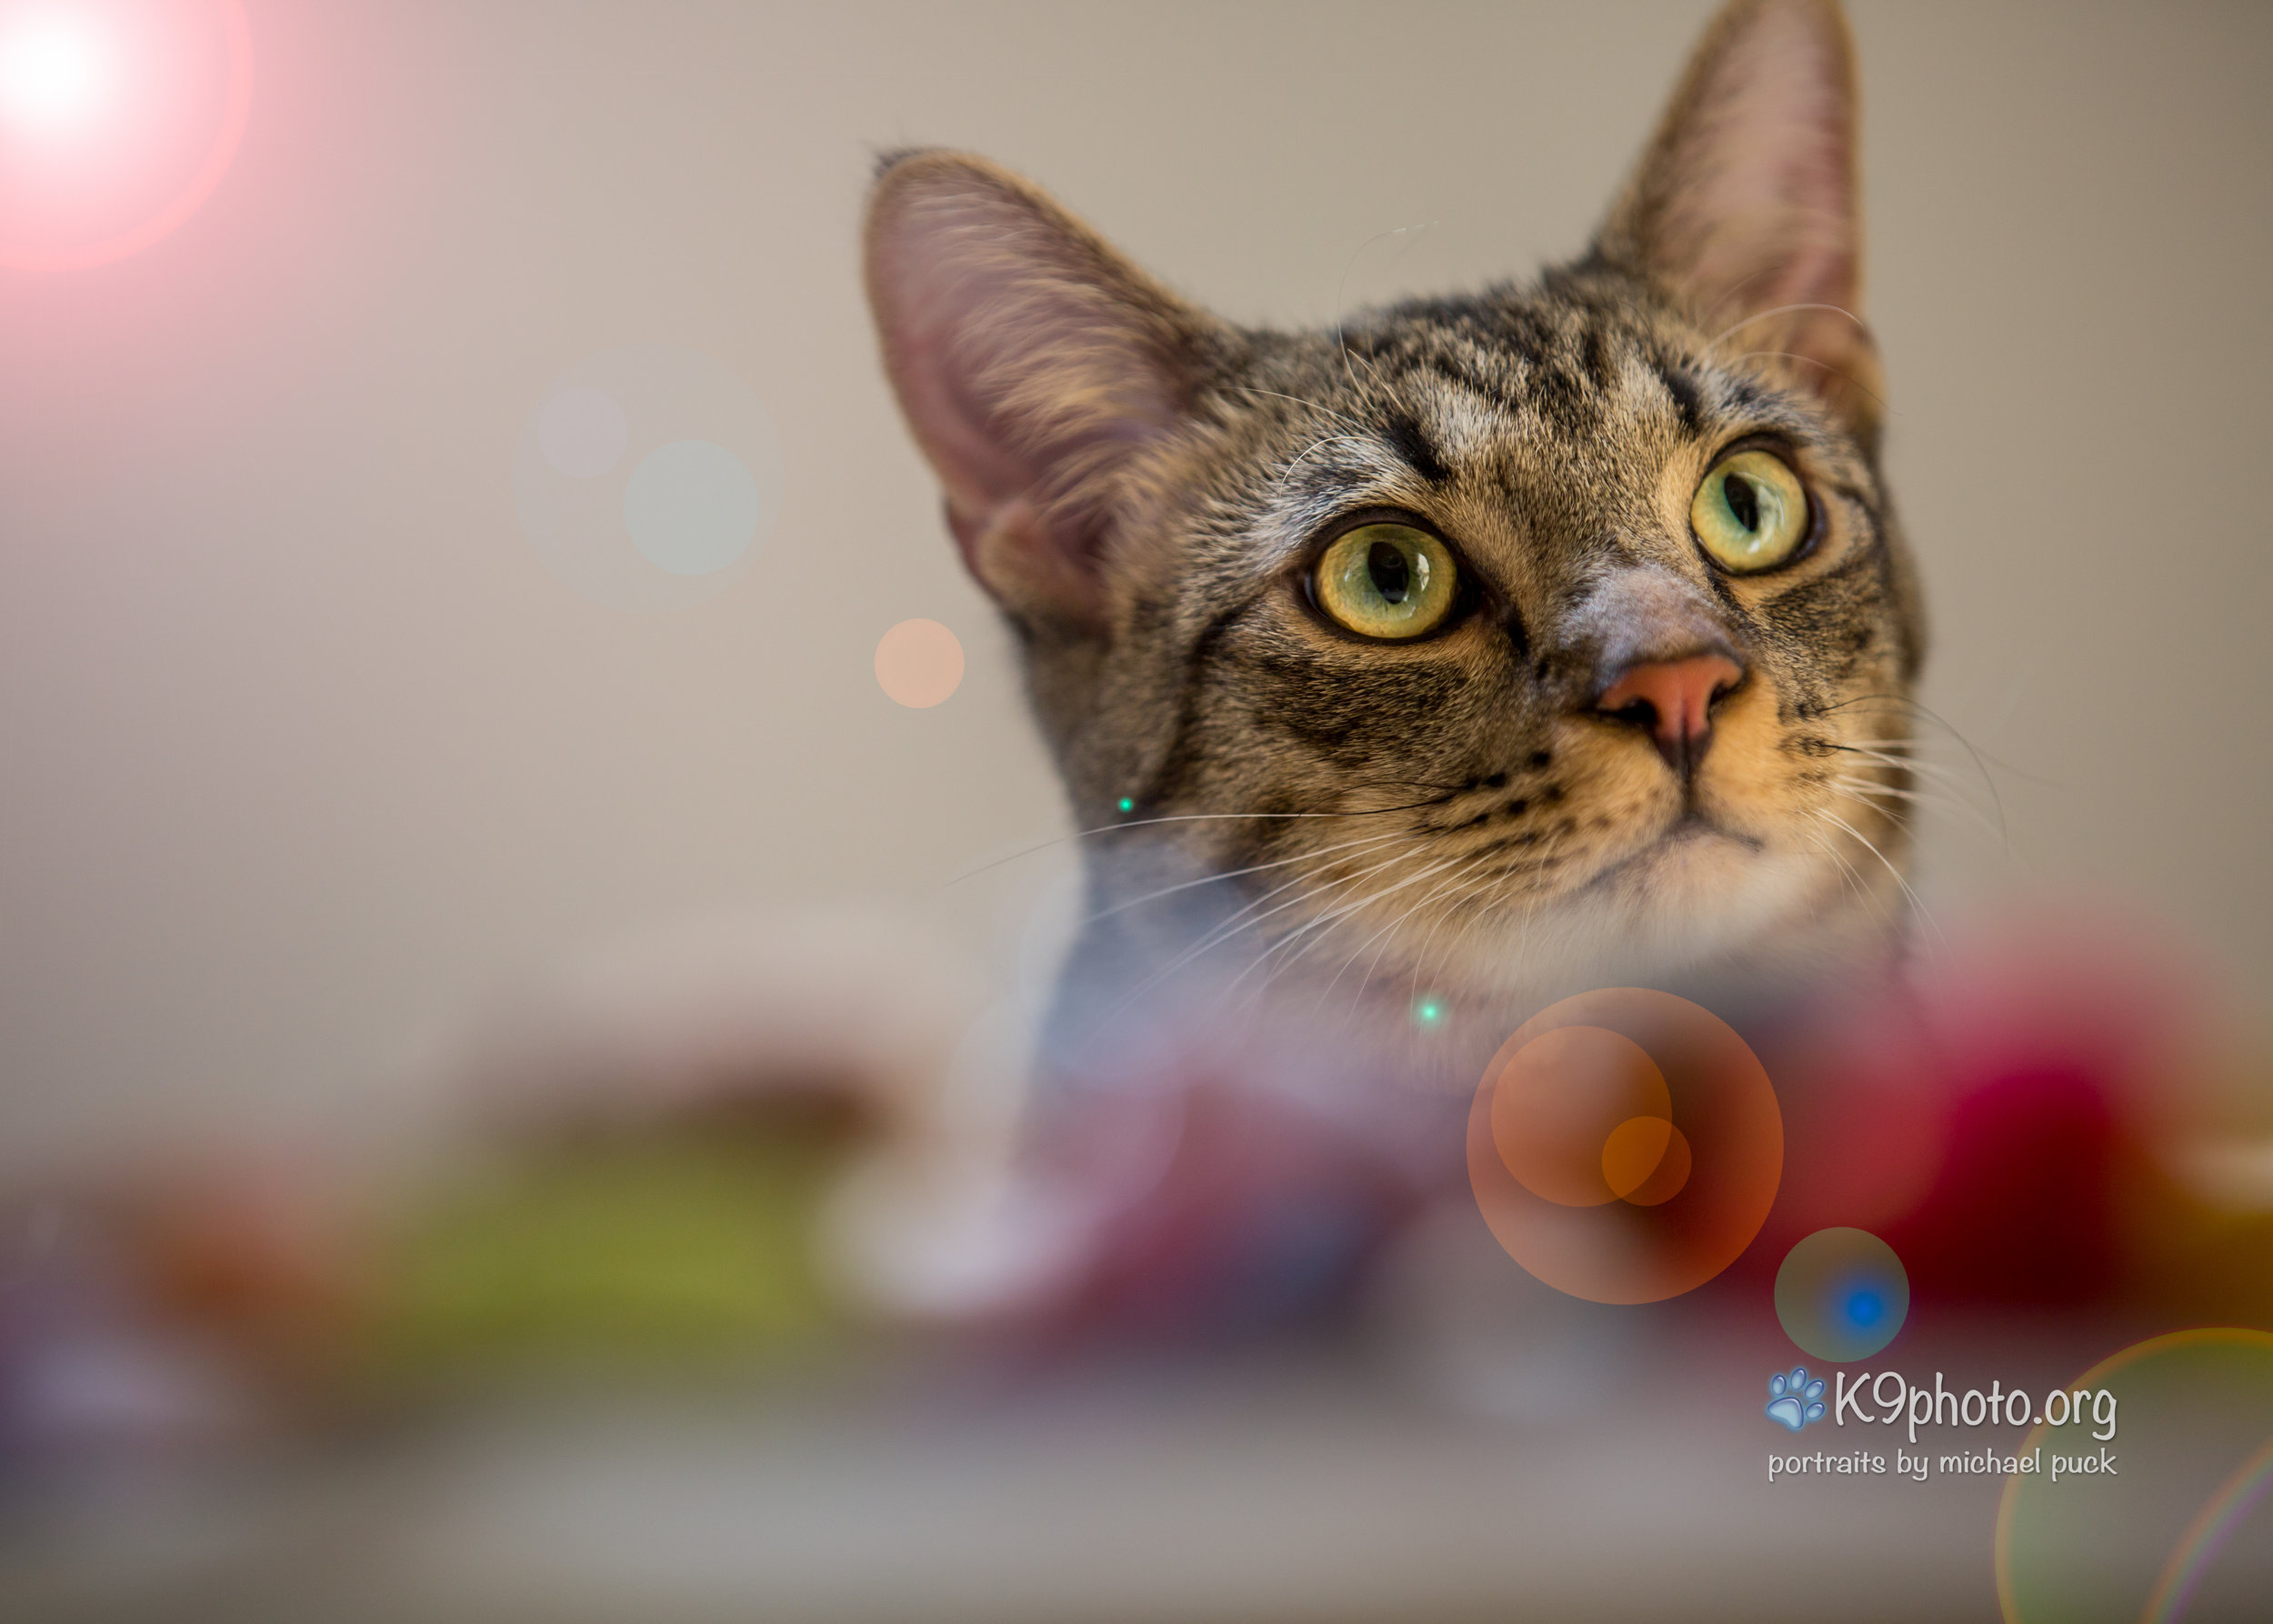 Yodi, decided to hide behind a wall-size cabinet for the first 30 min of the photo shoot